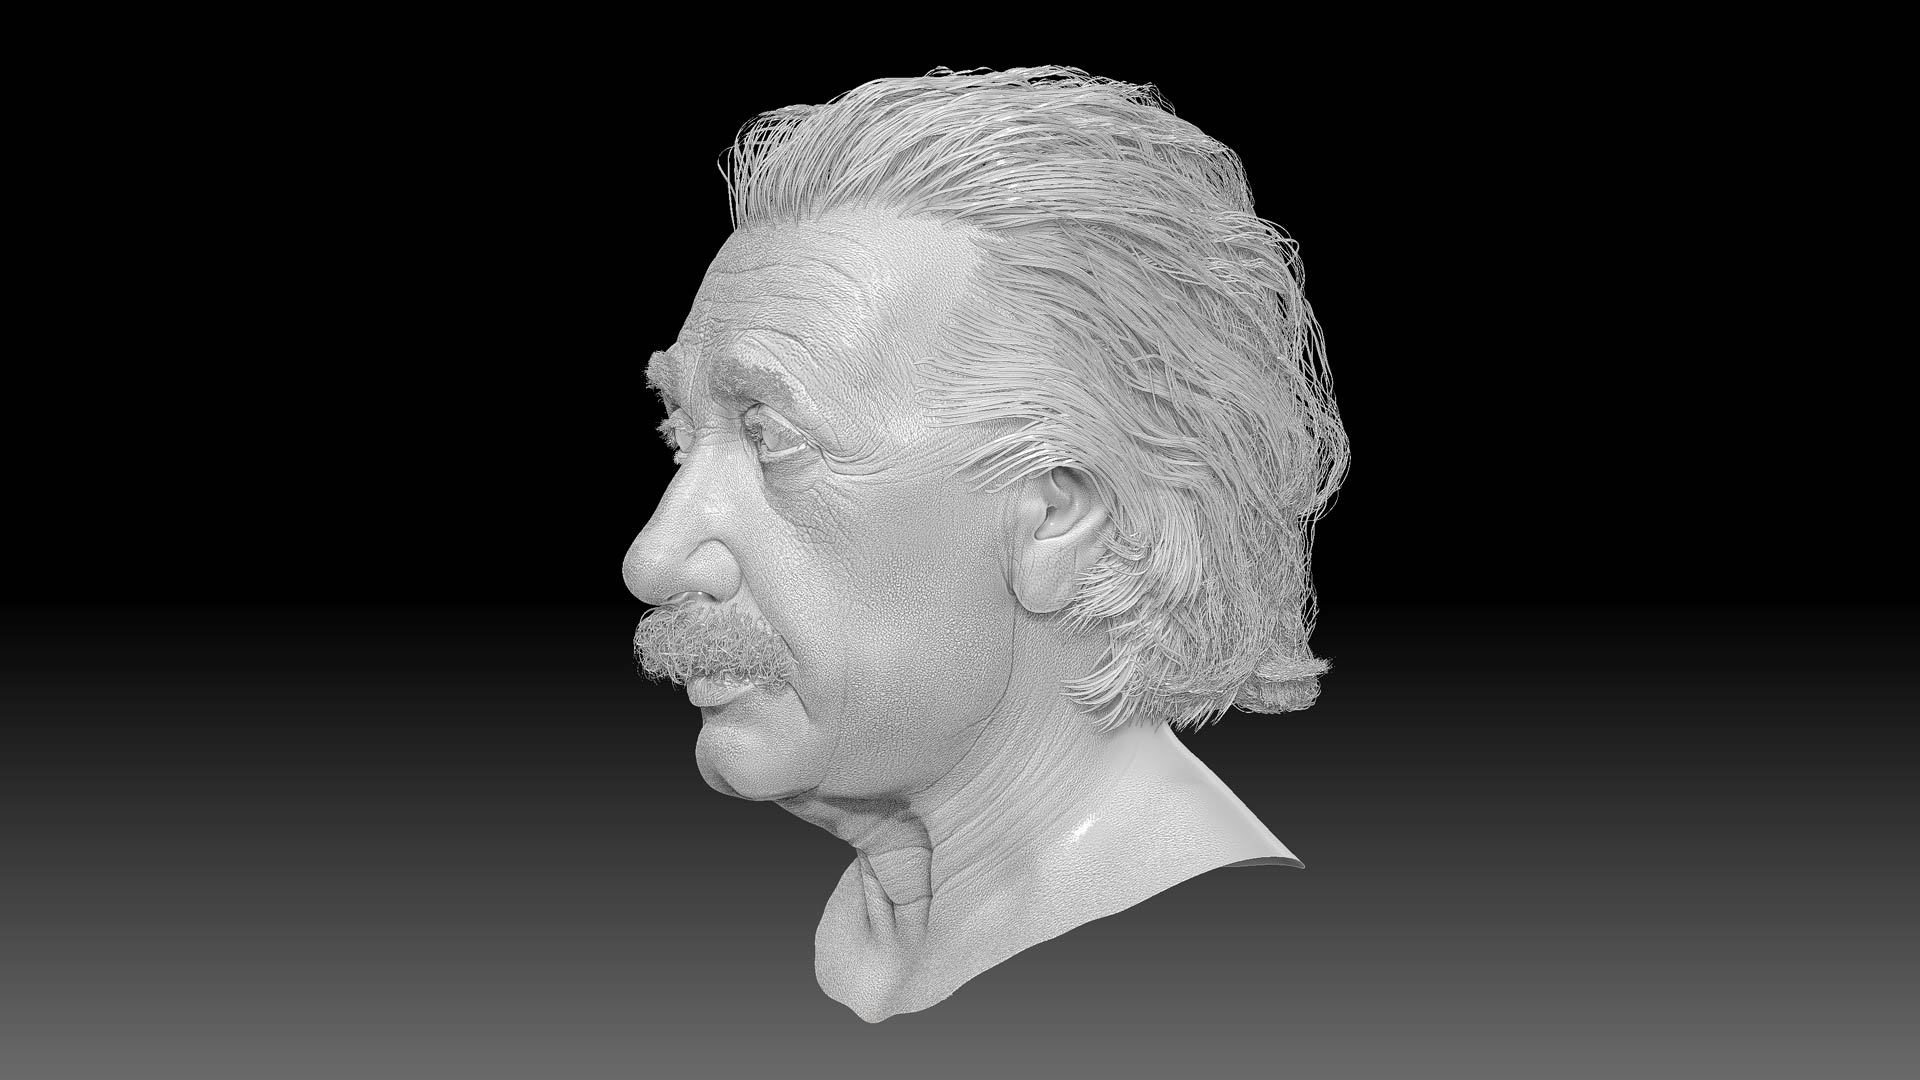 albert_einstein_zbrush_sculpting_model_head_character_site_view_wacom_wrincles Albert Einstein 3D Porträt für ein Hologram